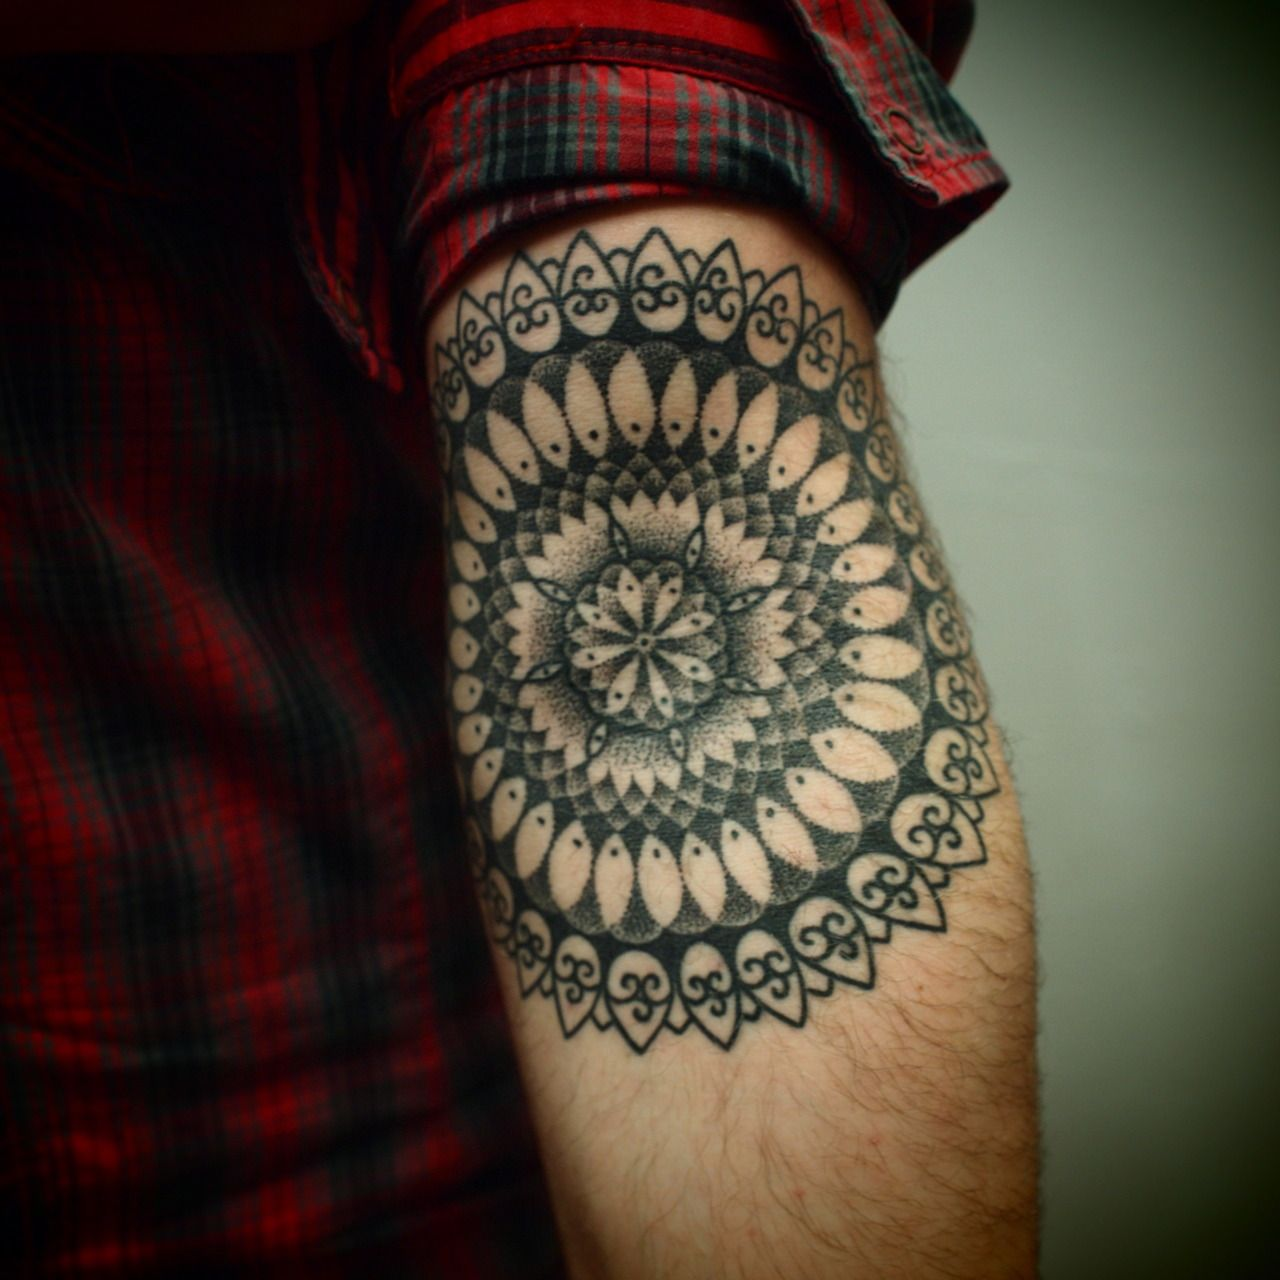 Tattoos By Eagershears On Pinterest: Best 25+ Black Work Tattoo Ideas On Pinterest